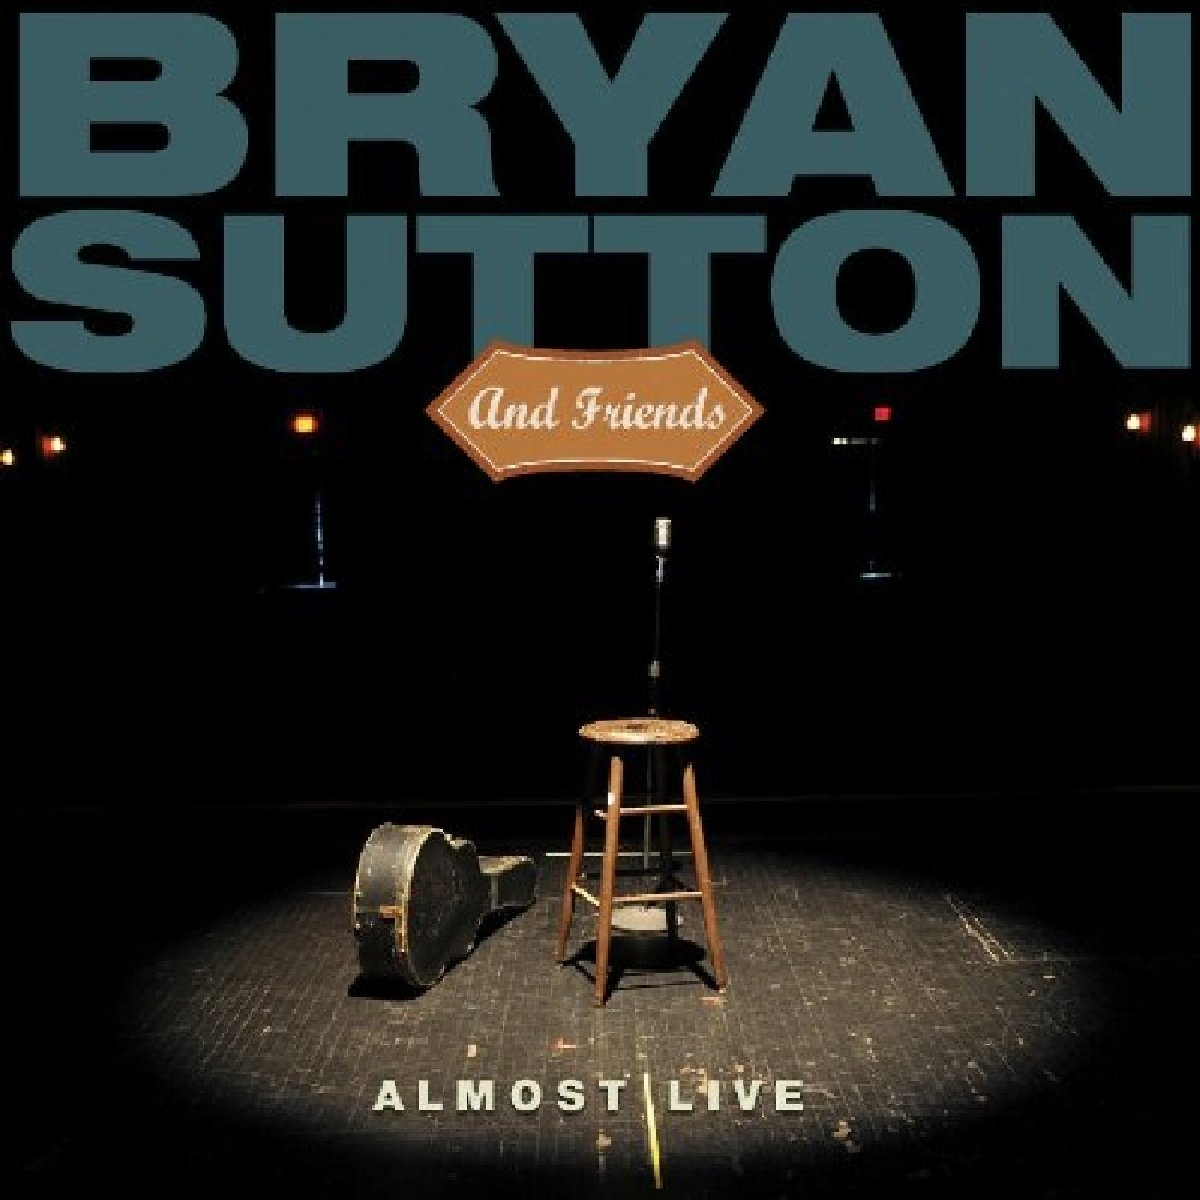 Almost Live by SUTTON,BRYAN (Image #1)